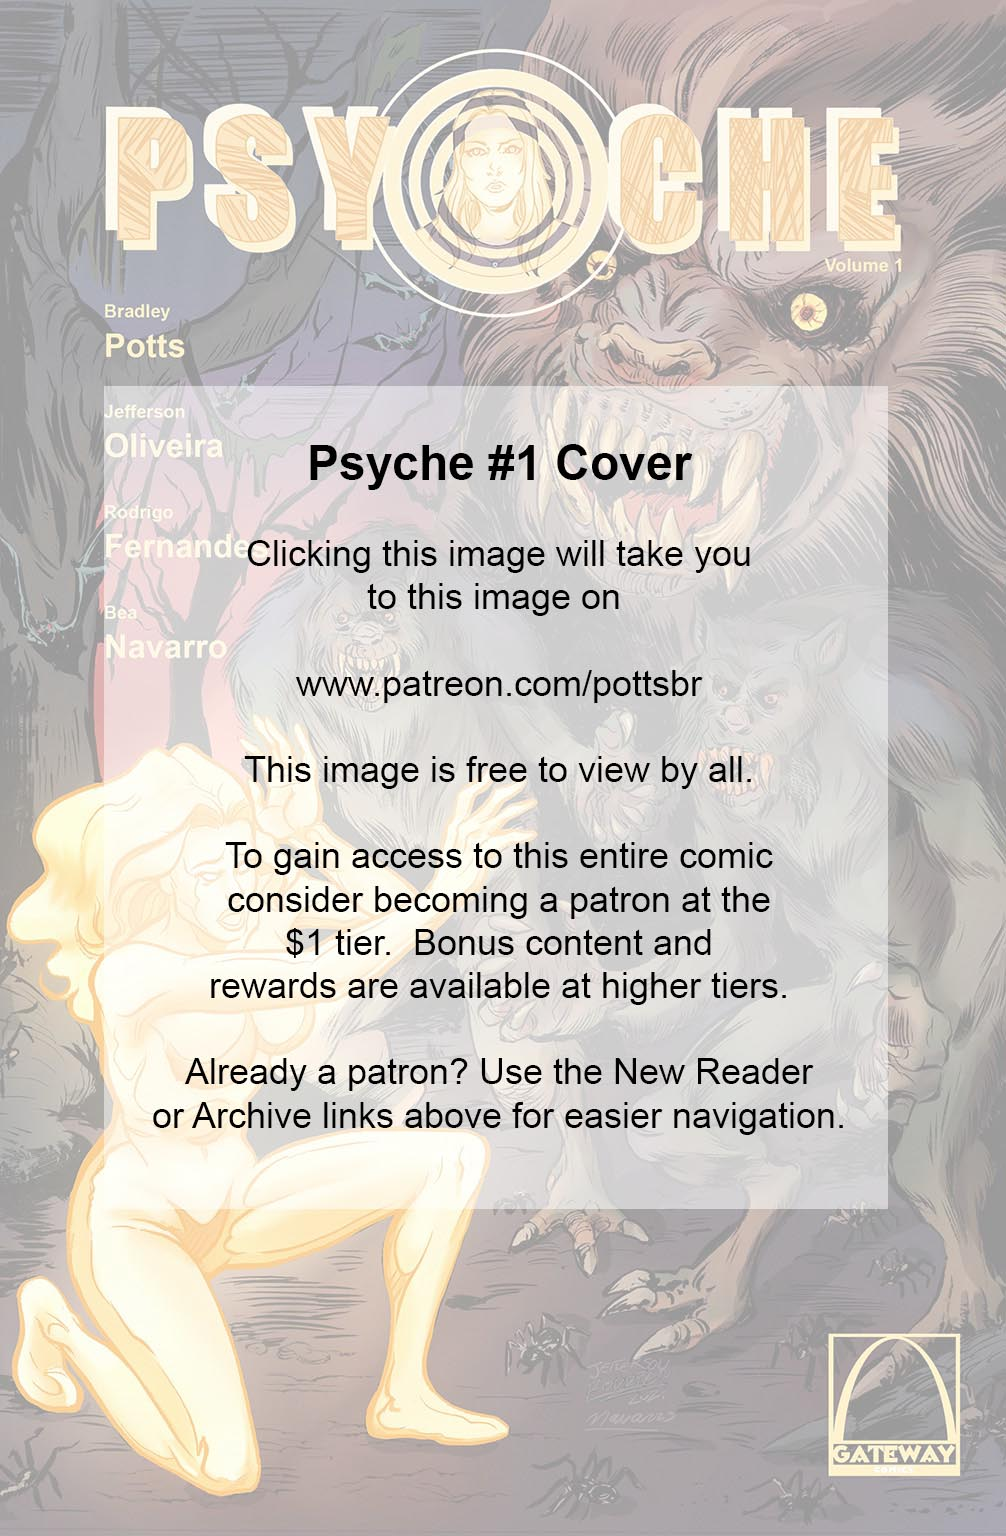 Psyche #1 Cover